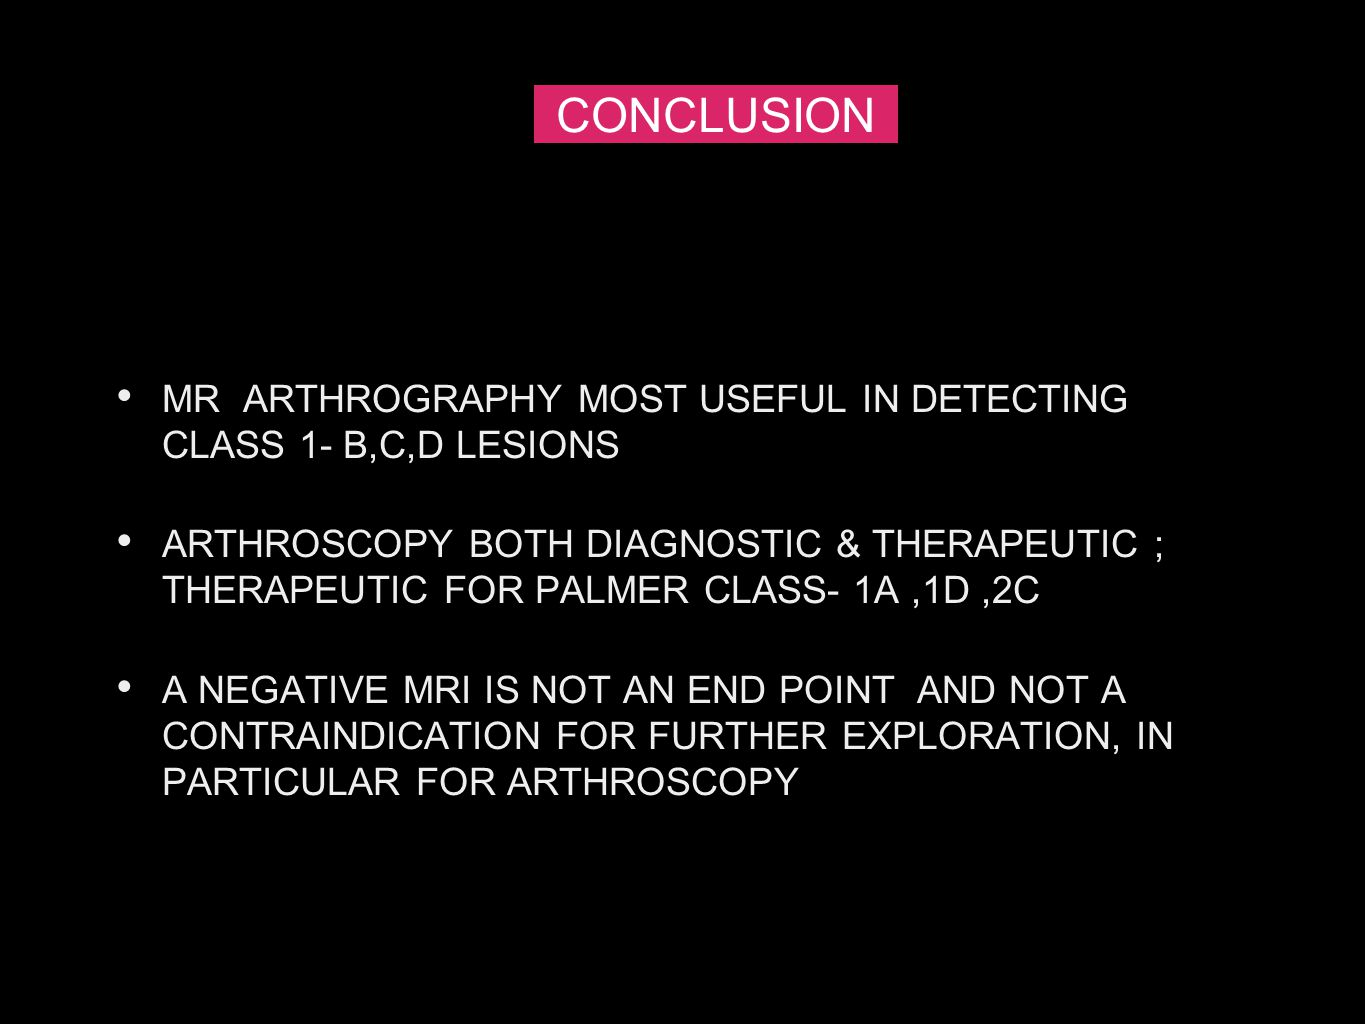 CONCLUSION MR ARTHROGRAPHY MOST USEFUL IN DETECTING CLASS 1- B,C,D LESIONS.